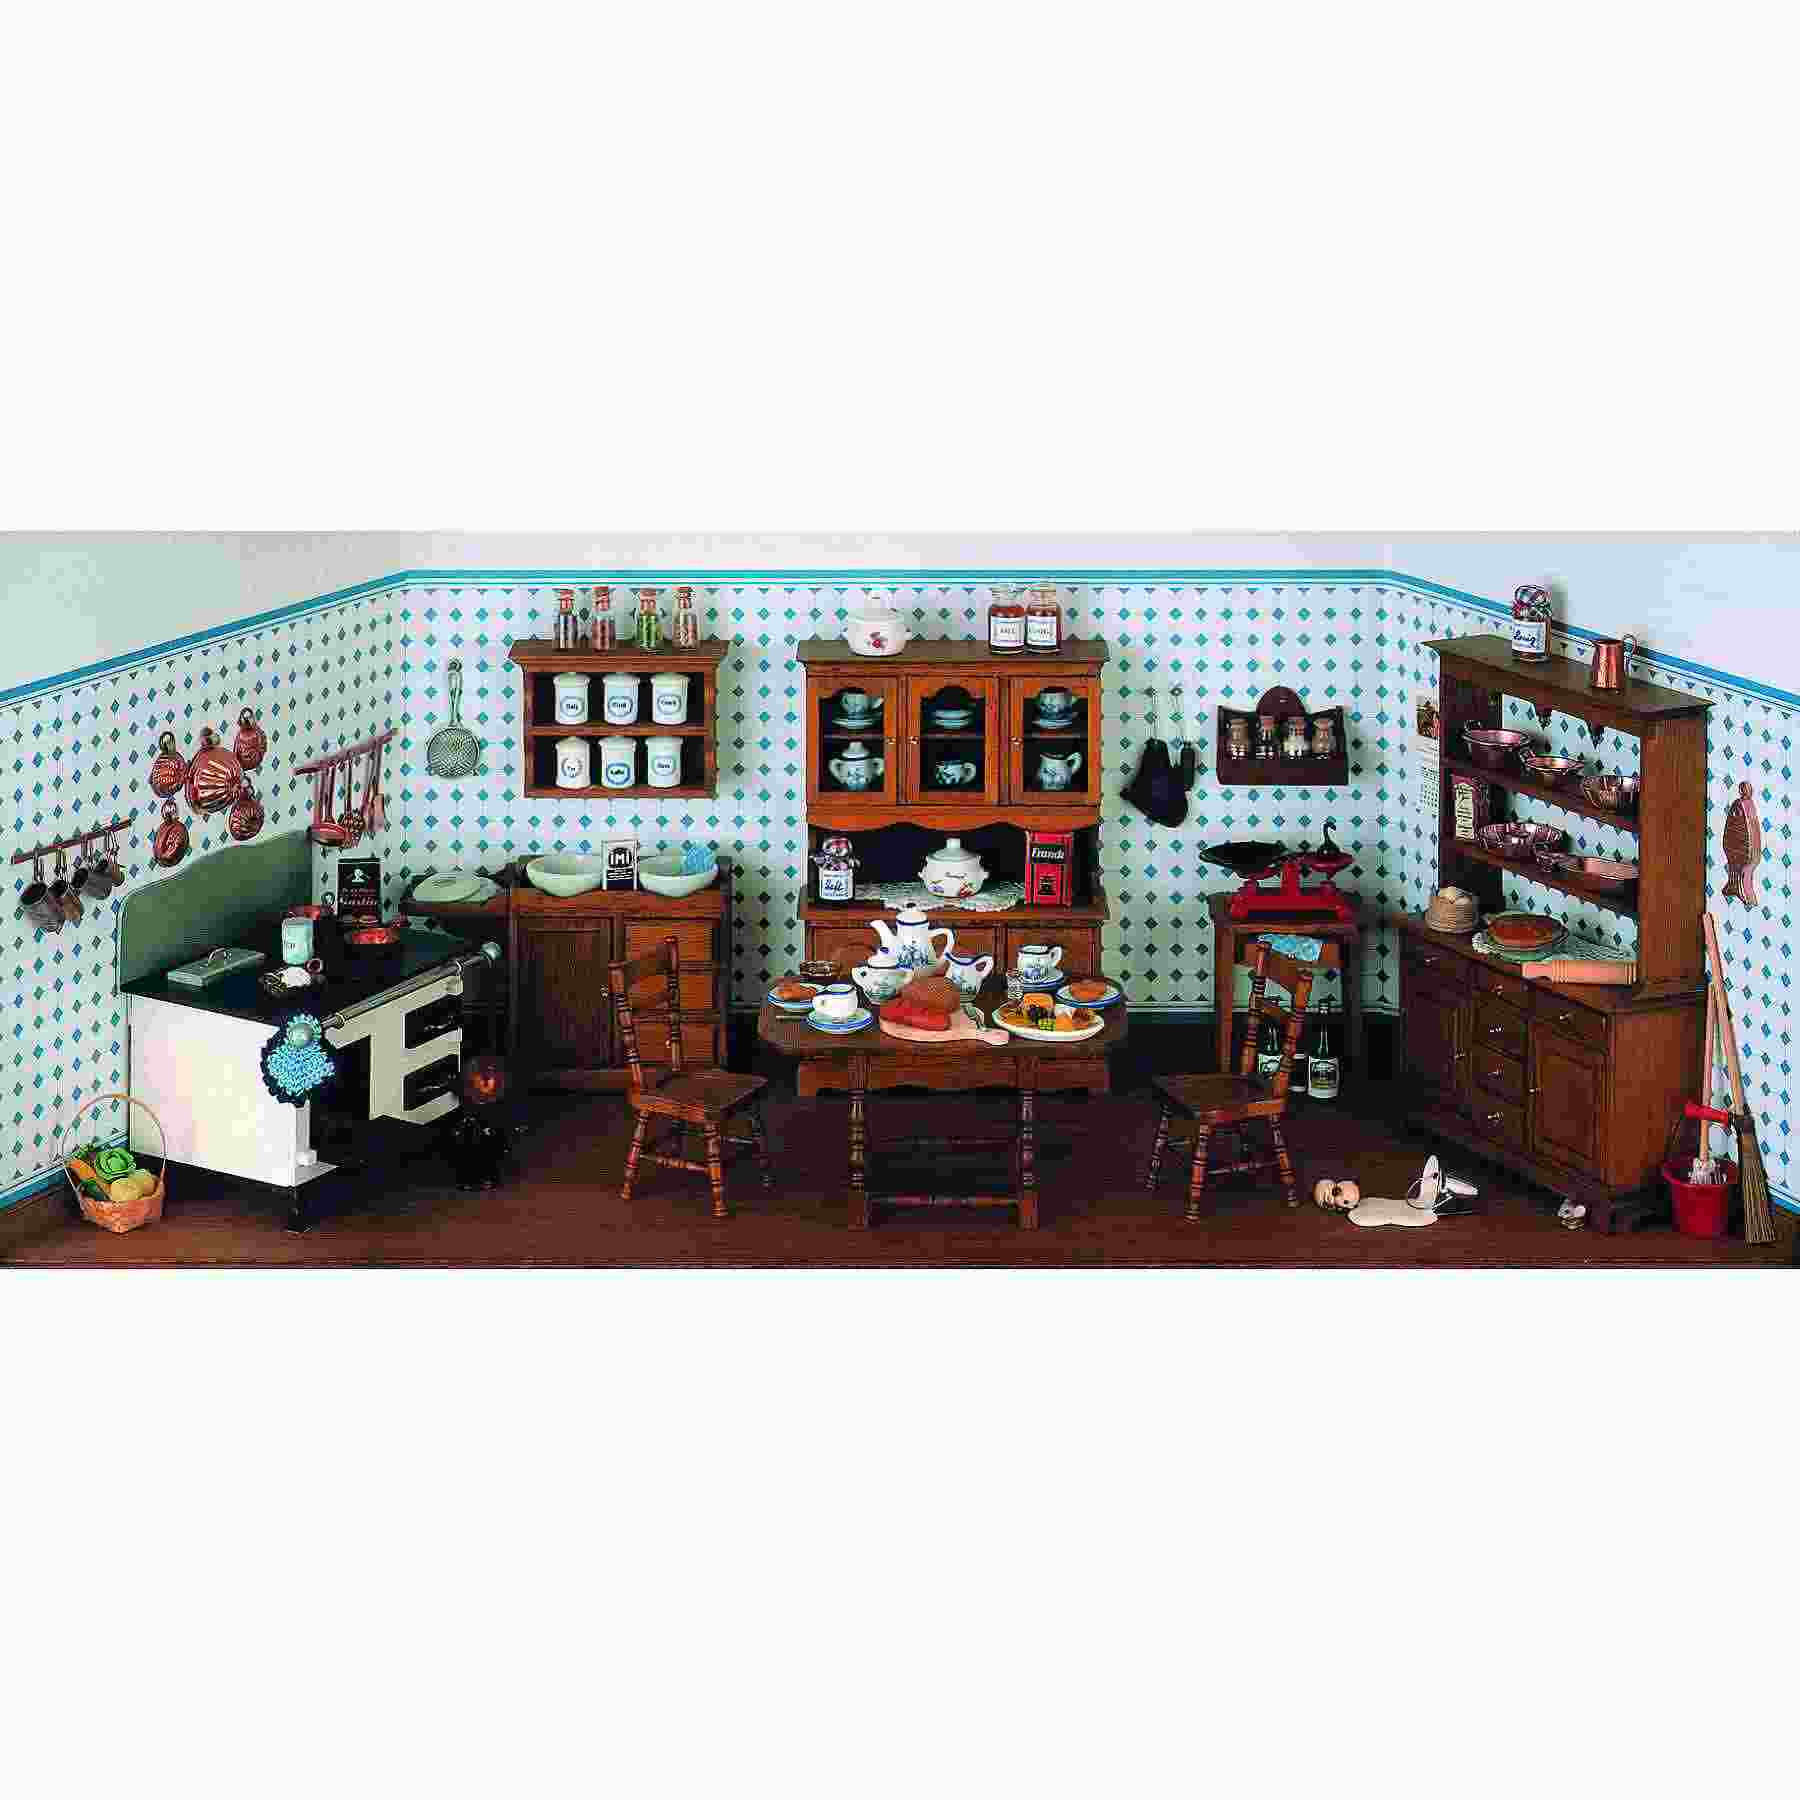 Complete set – Antique kitchen without stove